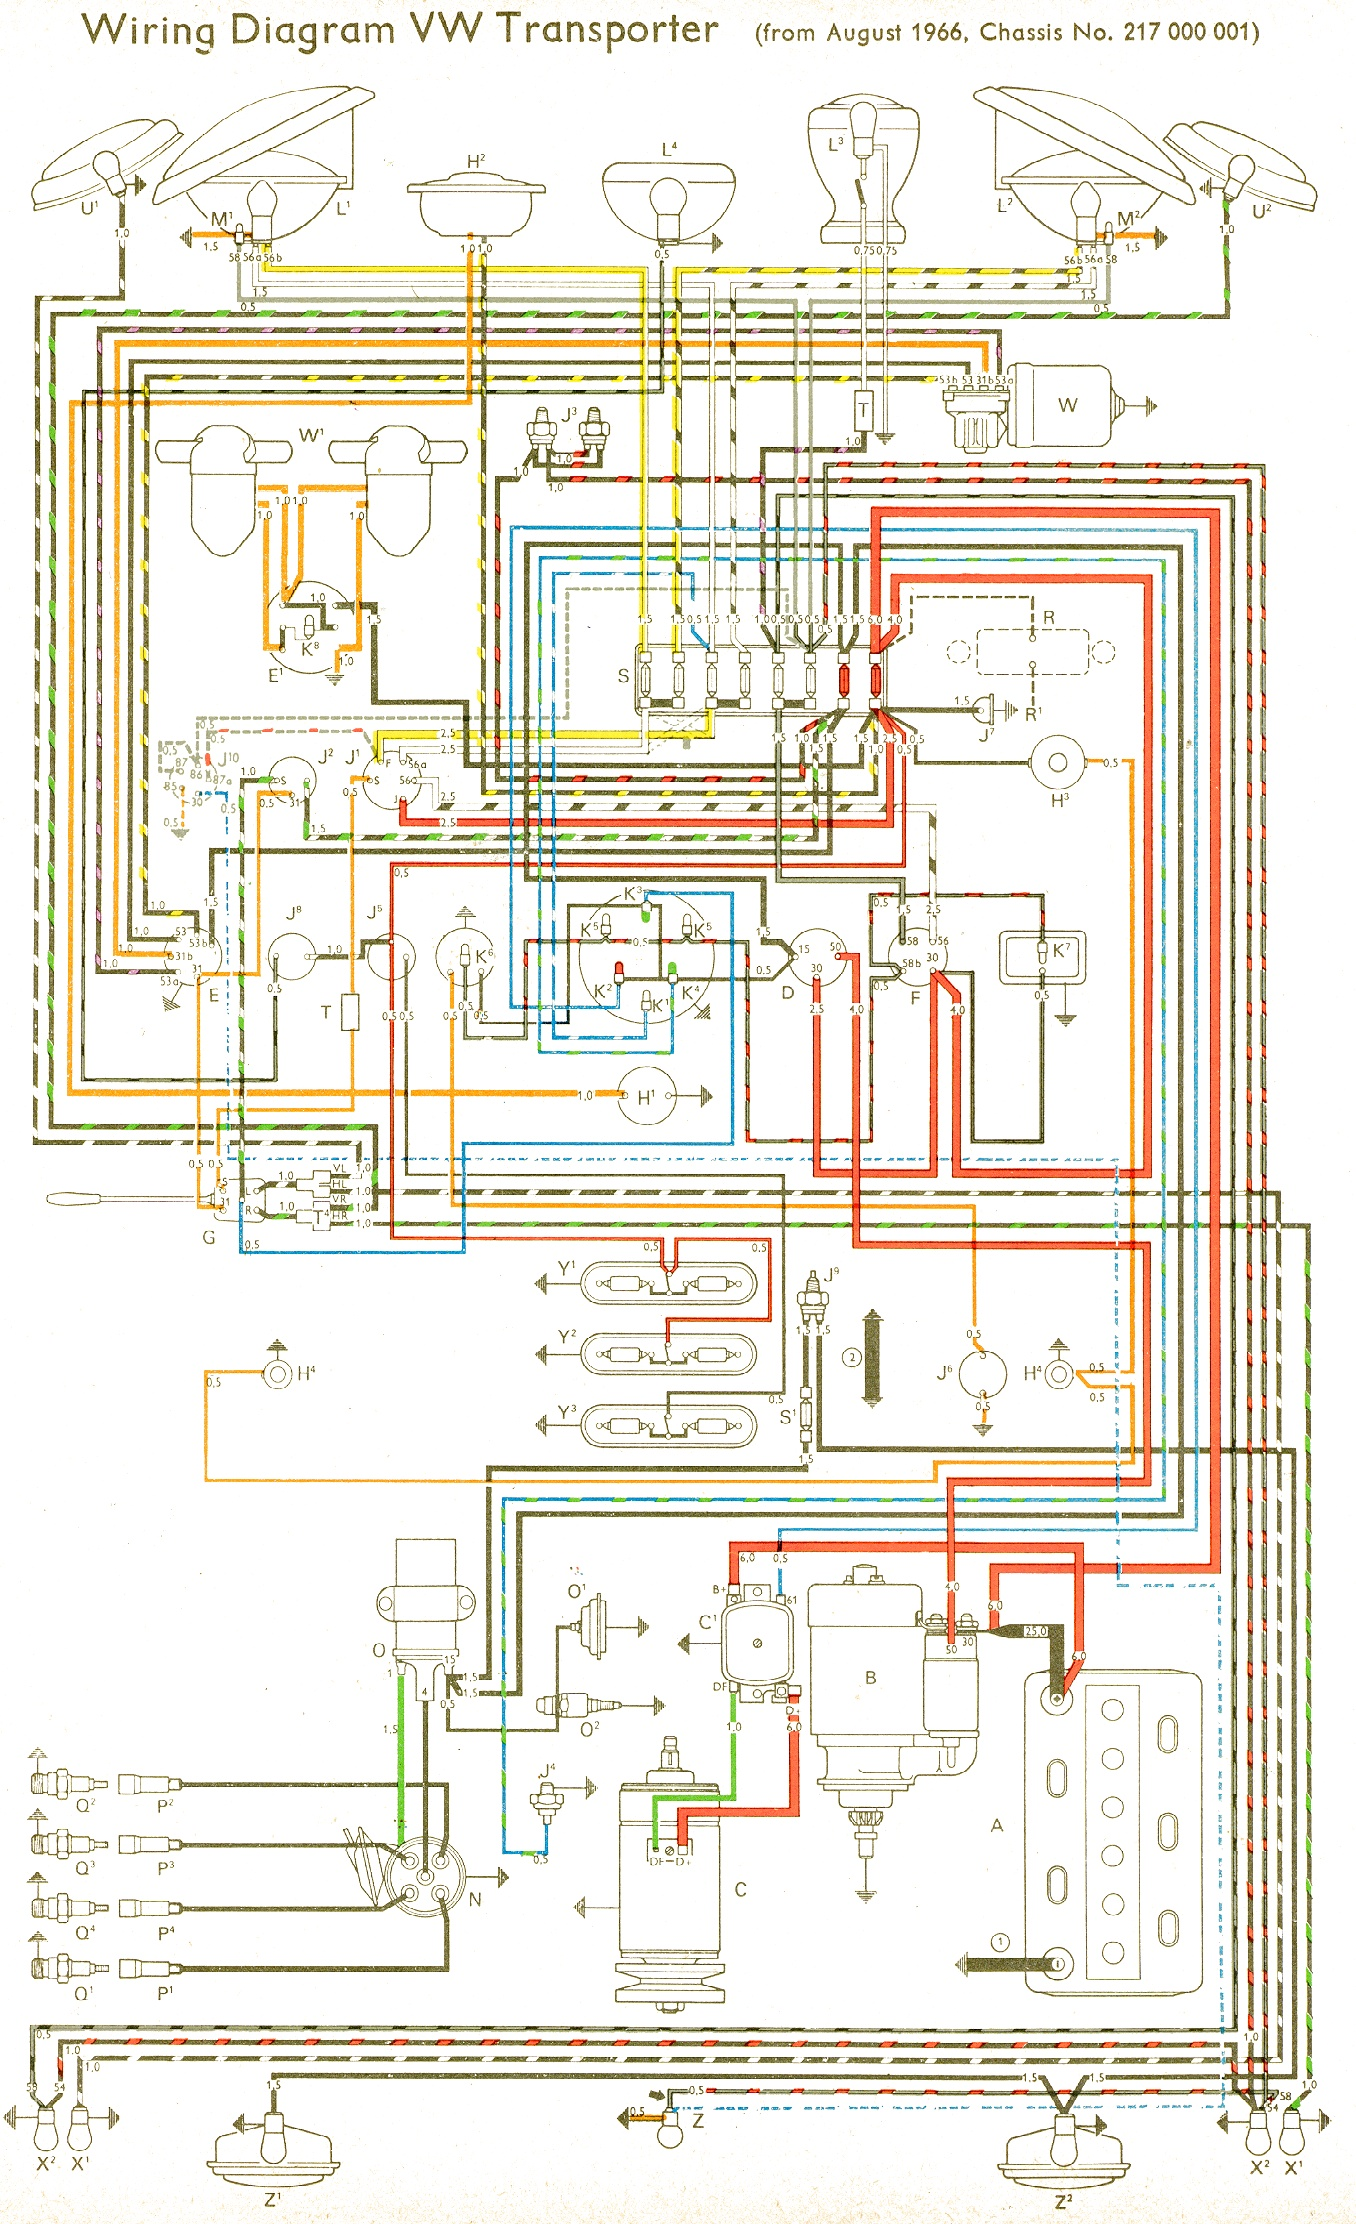 bus 66 bus wiring diagram vw wiring harness diagram \u2022 wiring diagrams j 1971 vw bus wiring diagram at webbmarketing.co